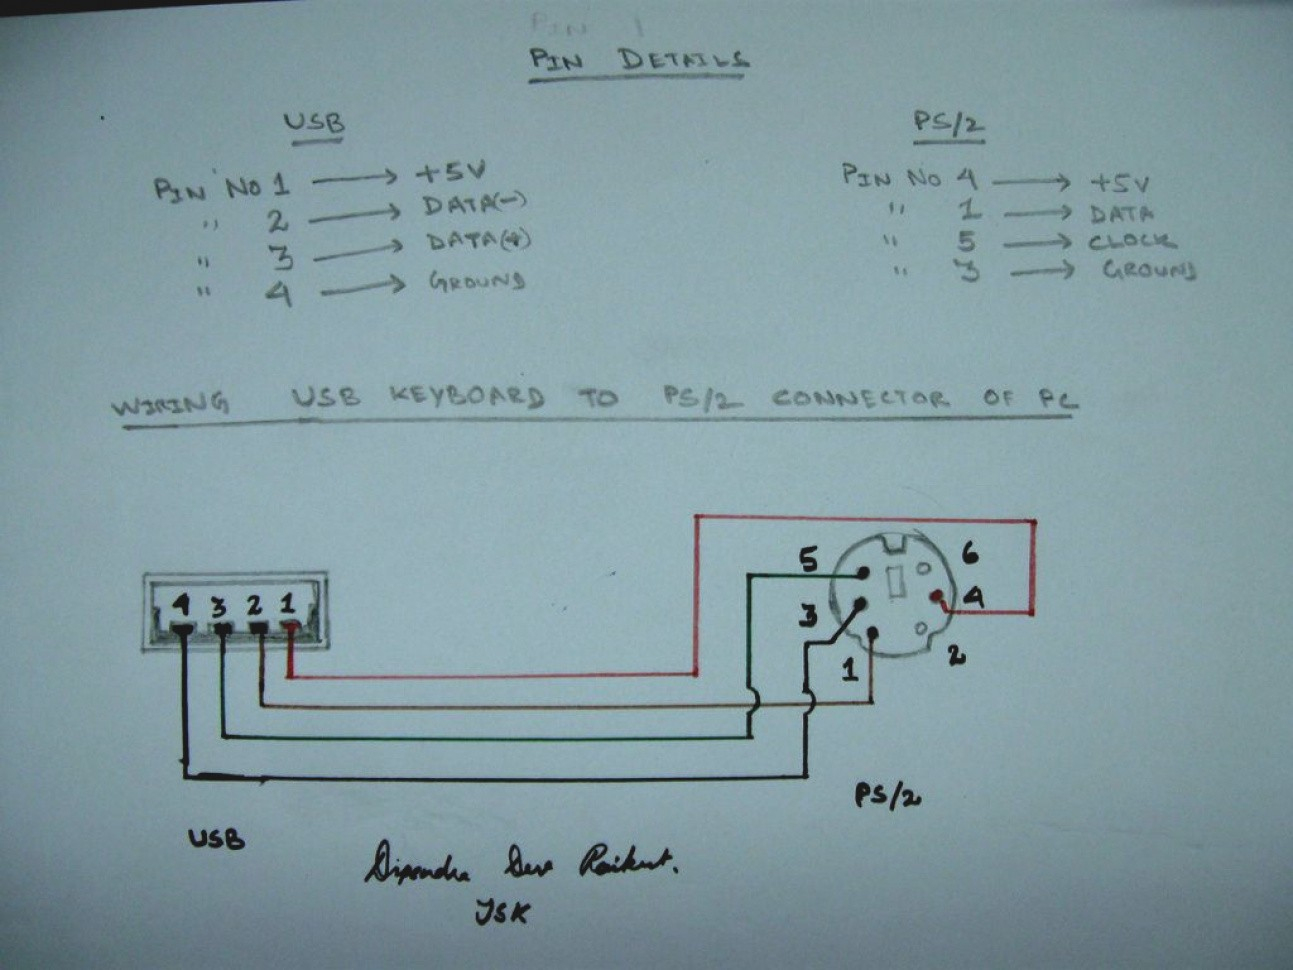 Ps2 To Usb Adapter Wiring Diagram | Wiring Diagram - Usb Keyboard To Ps2 Adapter Wiring Diagram